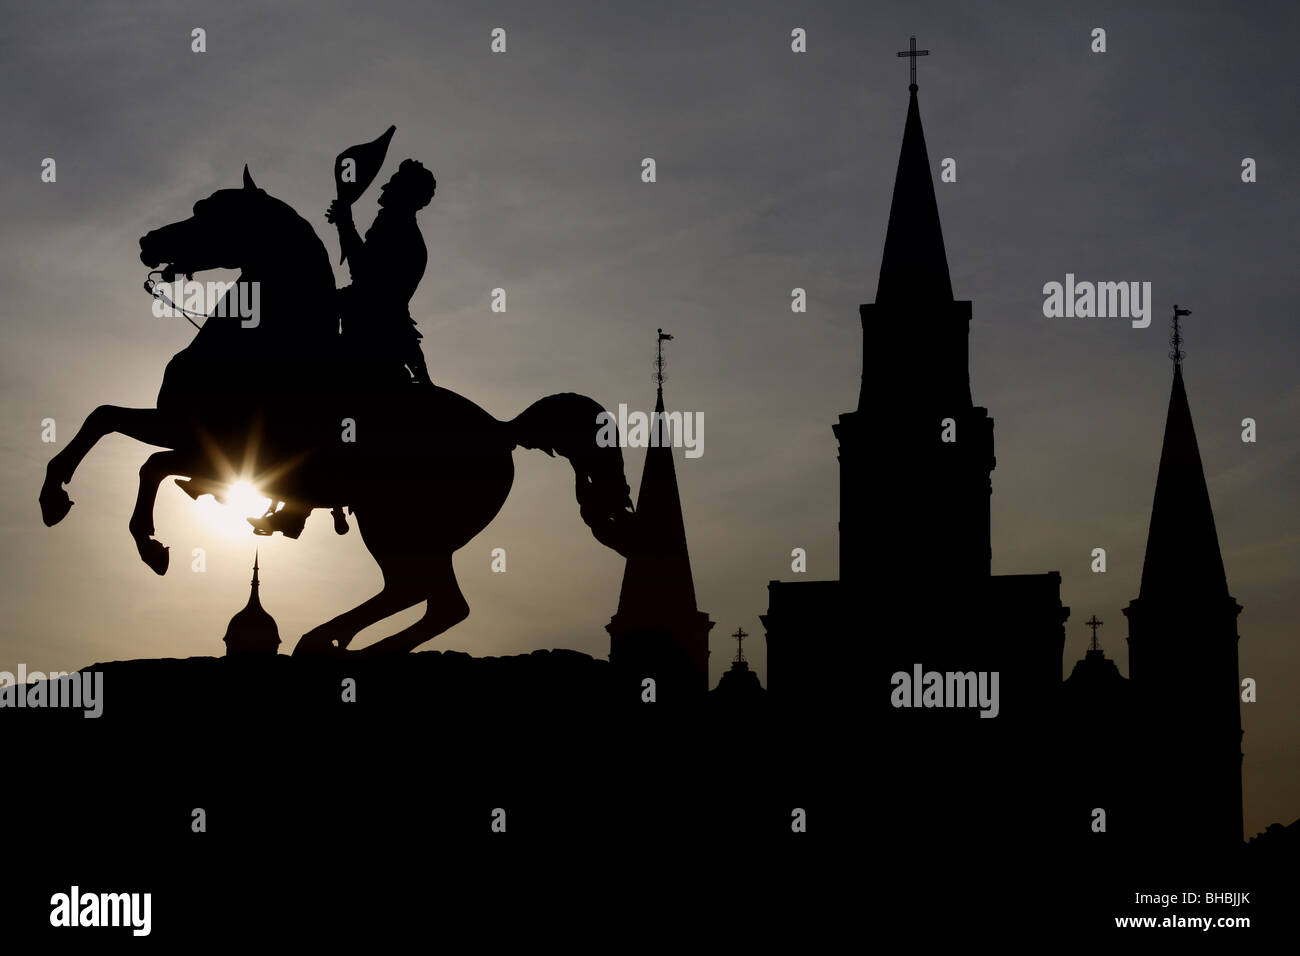 General Andrew Jackson Statue, St. Louis Cathedral, Jackson Square, French Quarter, New Orleans, Louisiana, USA - Stock Image